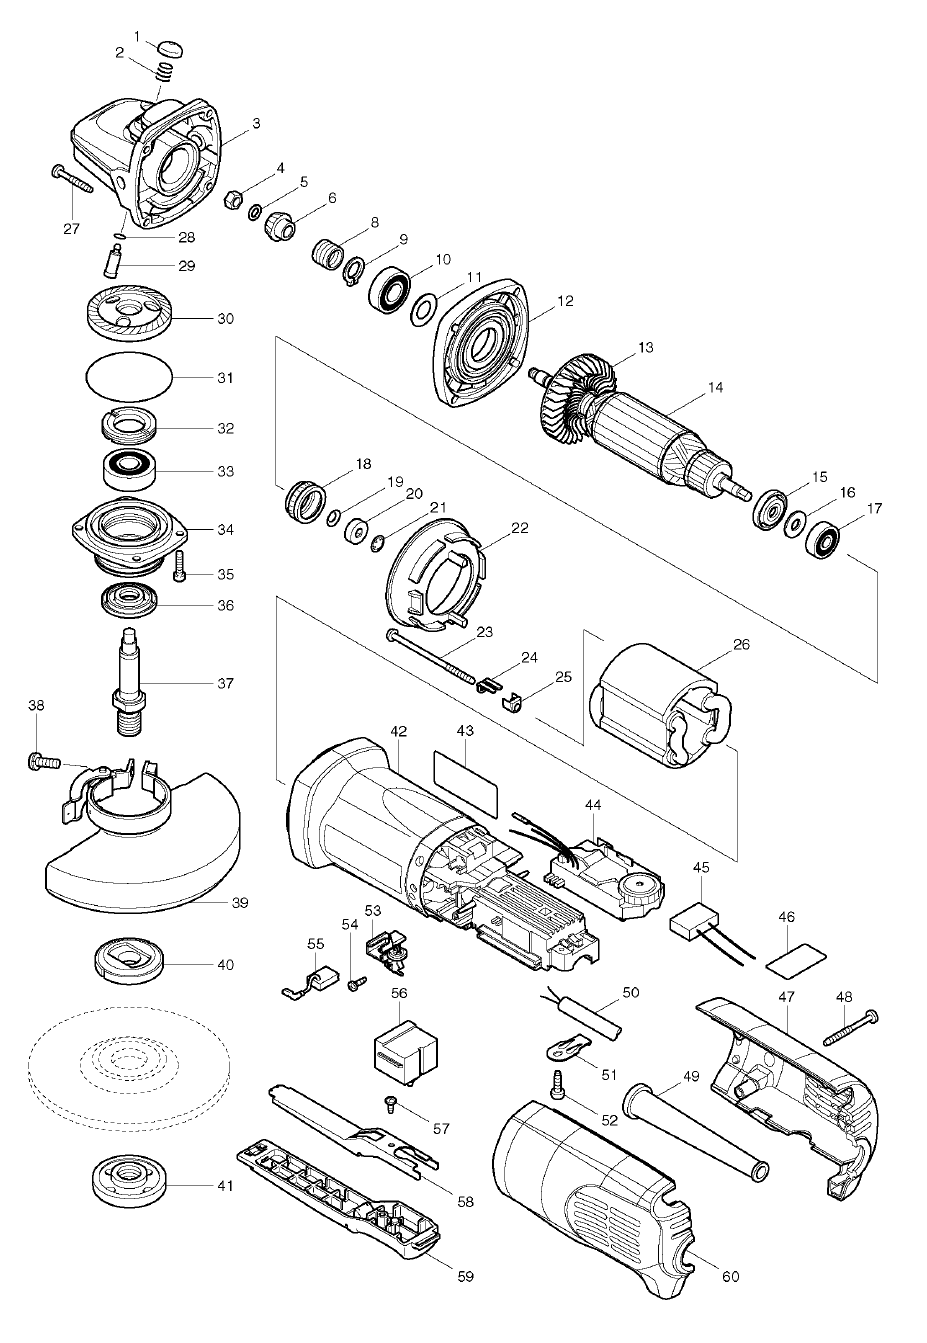 Makita Blower Wiring Diagram Electrical Diagrams 04 Chevy 2500 Jr3000v Library